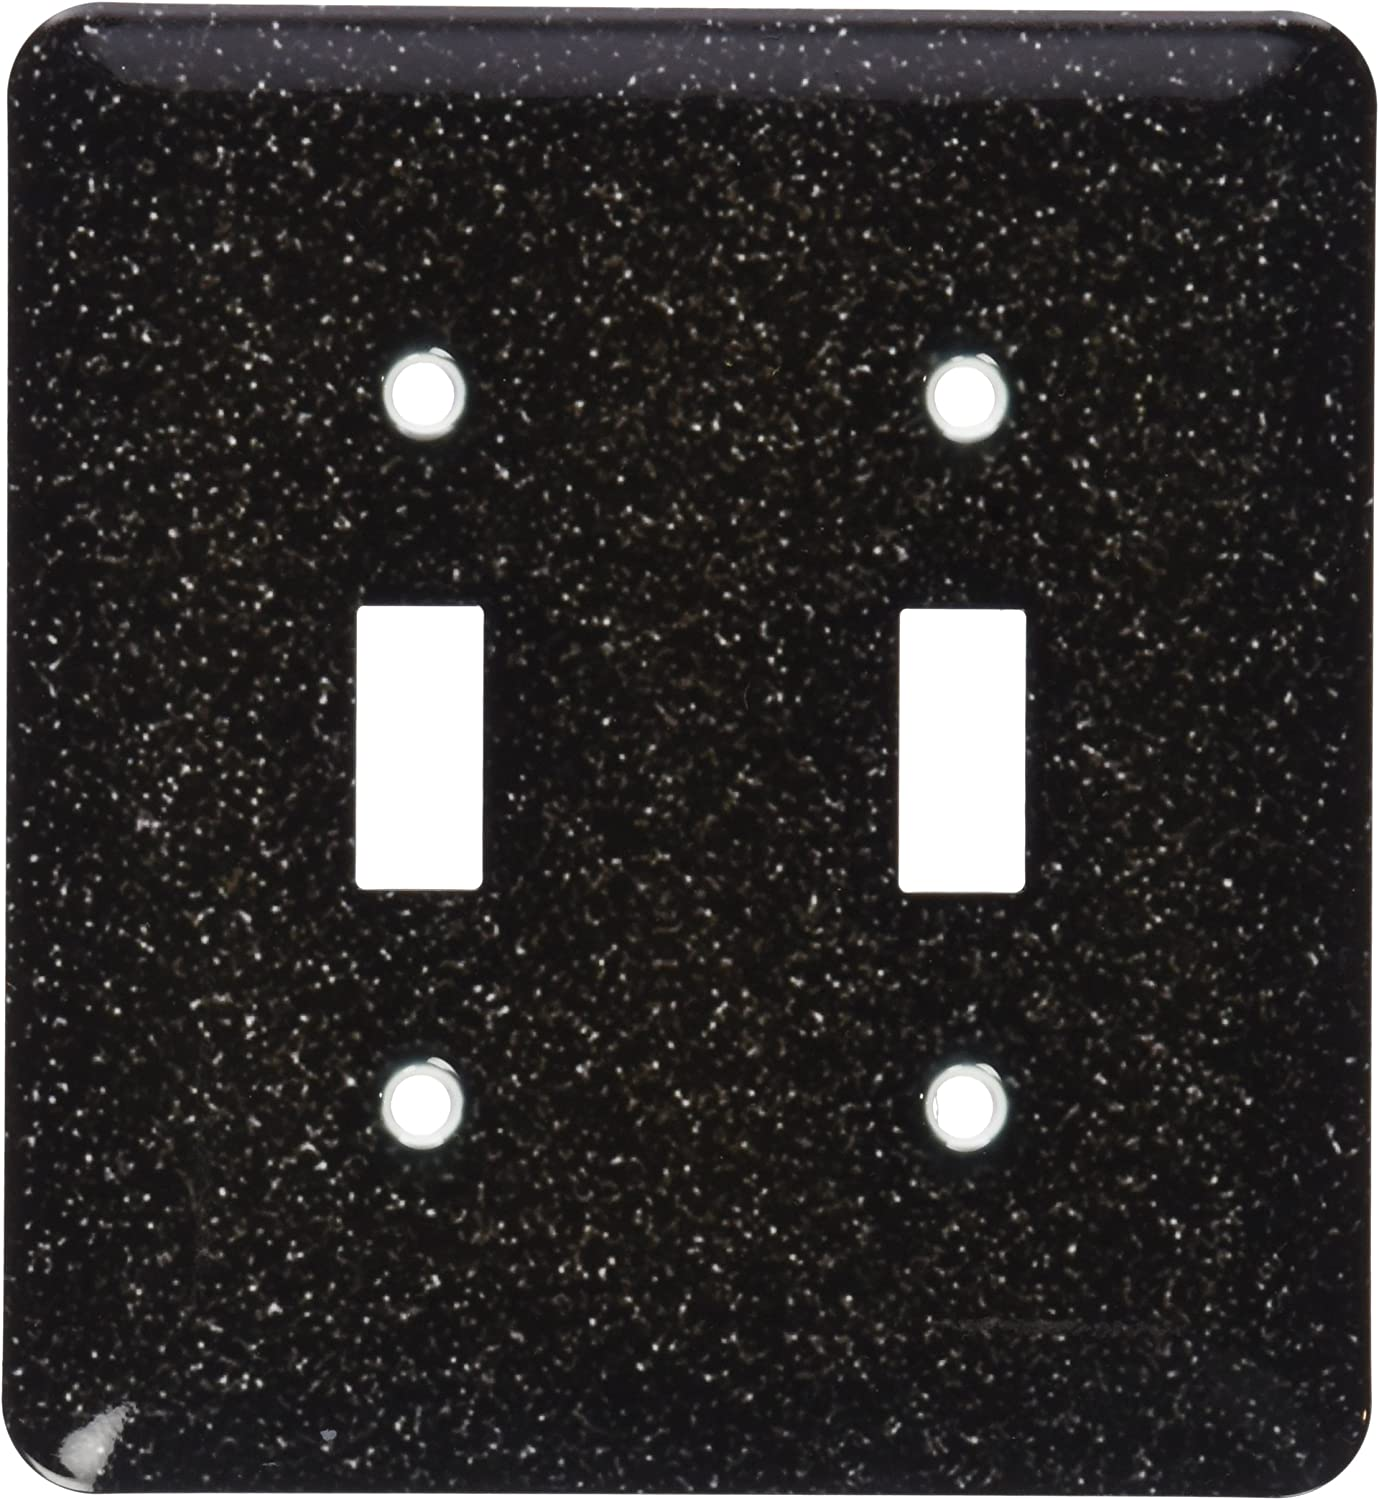 3dRose lsp/_182589/_1 Print of Deep Red Purple Shiny Glitter Light Switch Cover 3D Rose Home Improvement